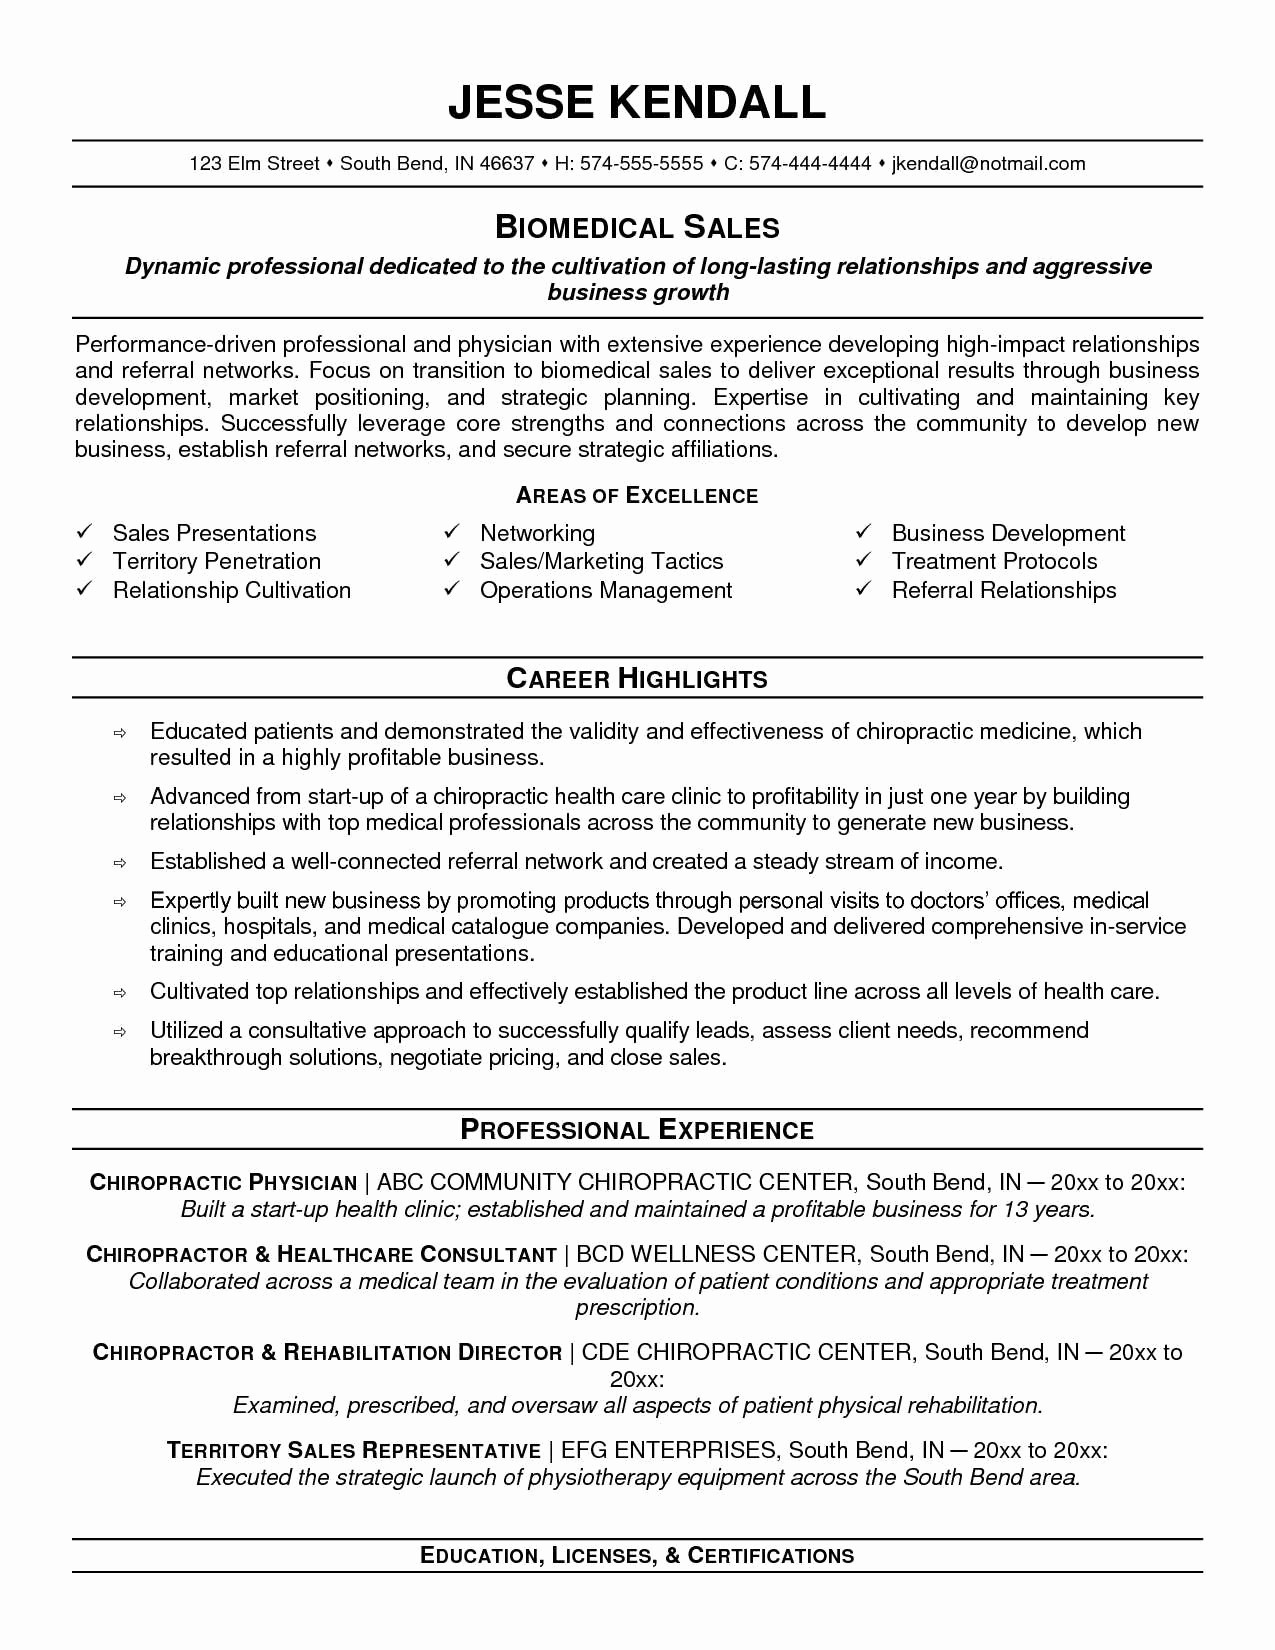 Free Functional Resume Template 2018 Beautiful 41 Good Functional Resume Template 2018 Xb E